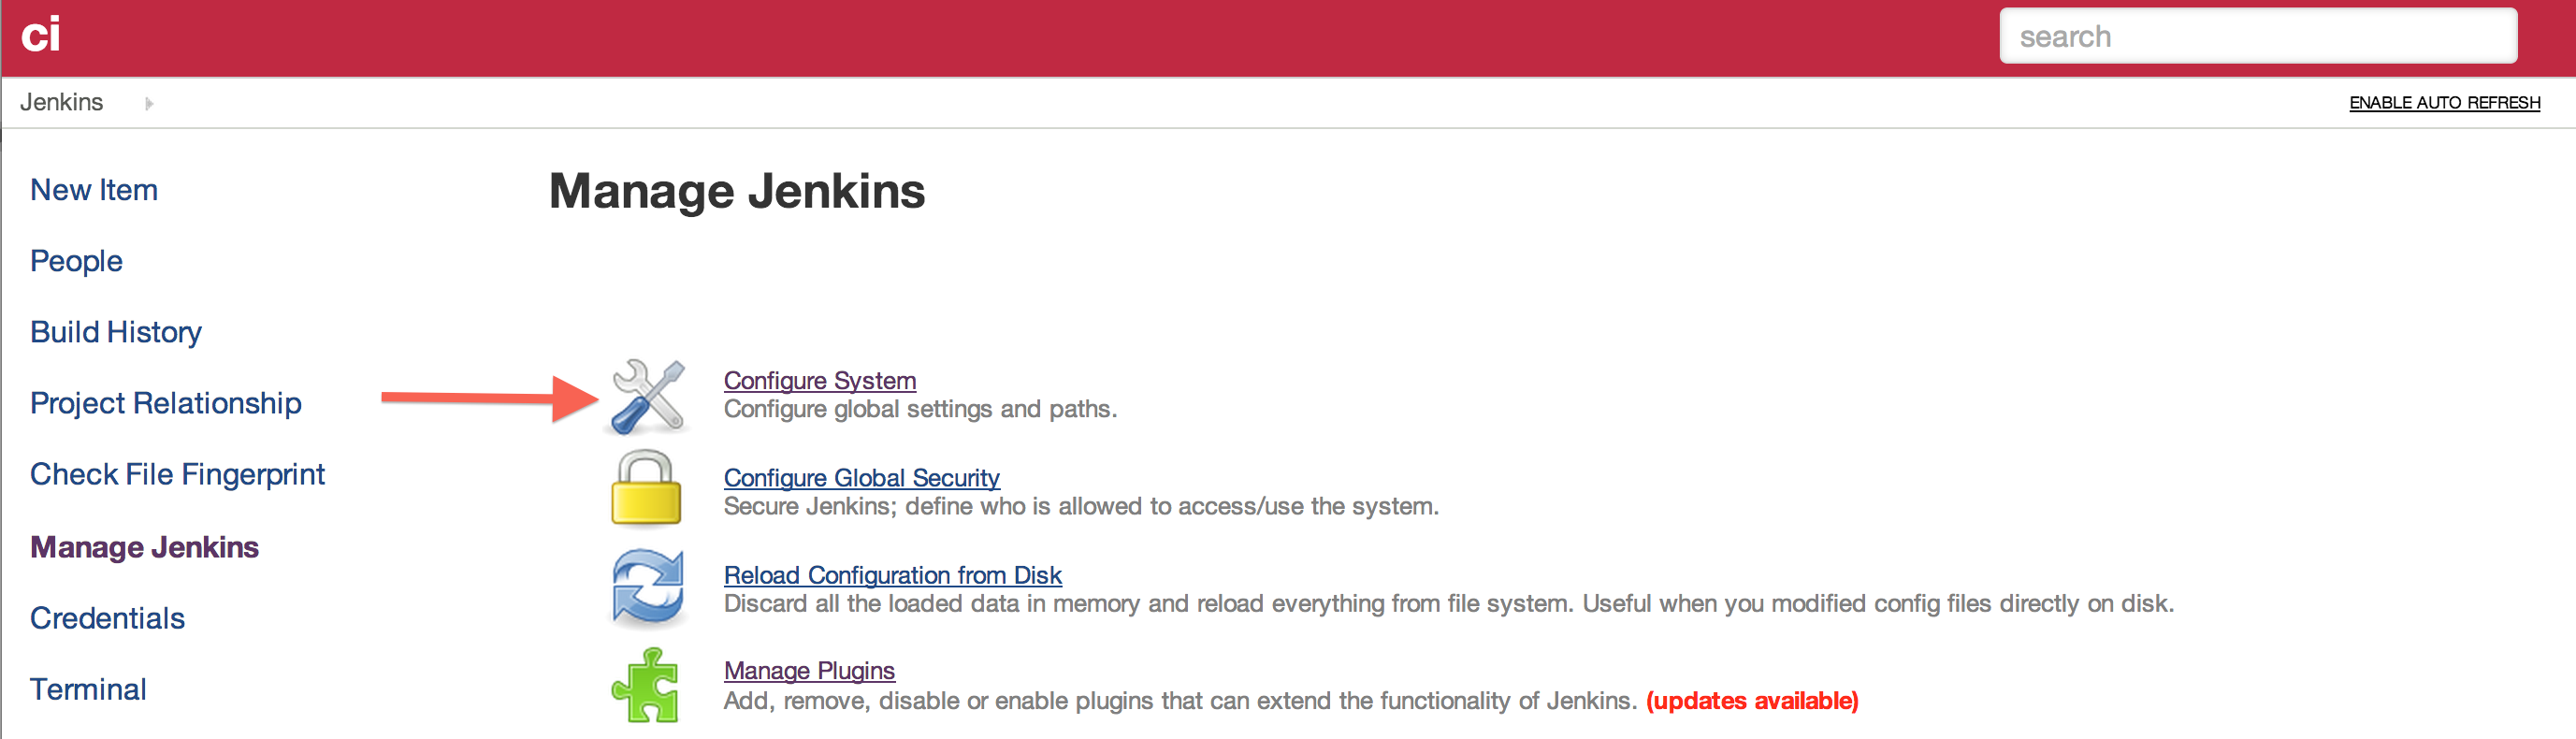 Jenkins configuration page